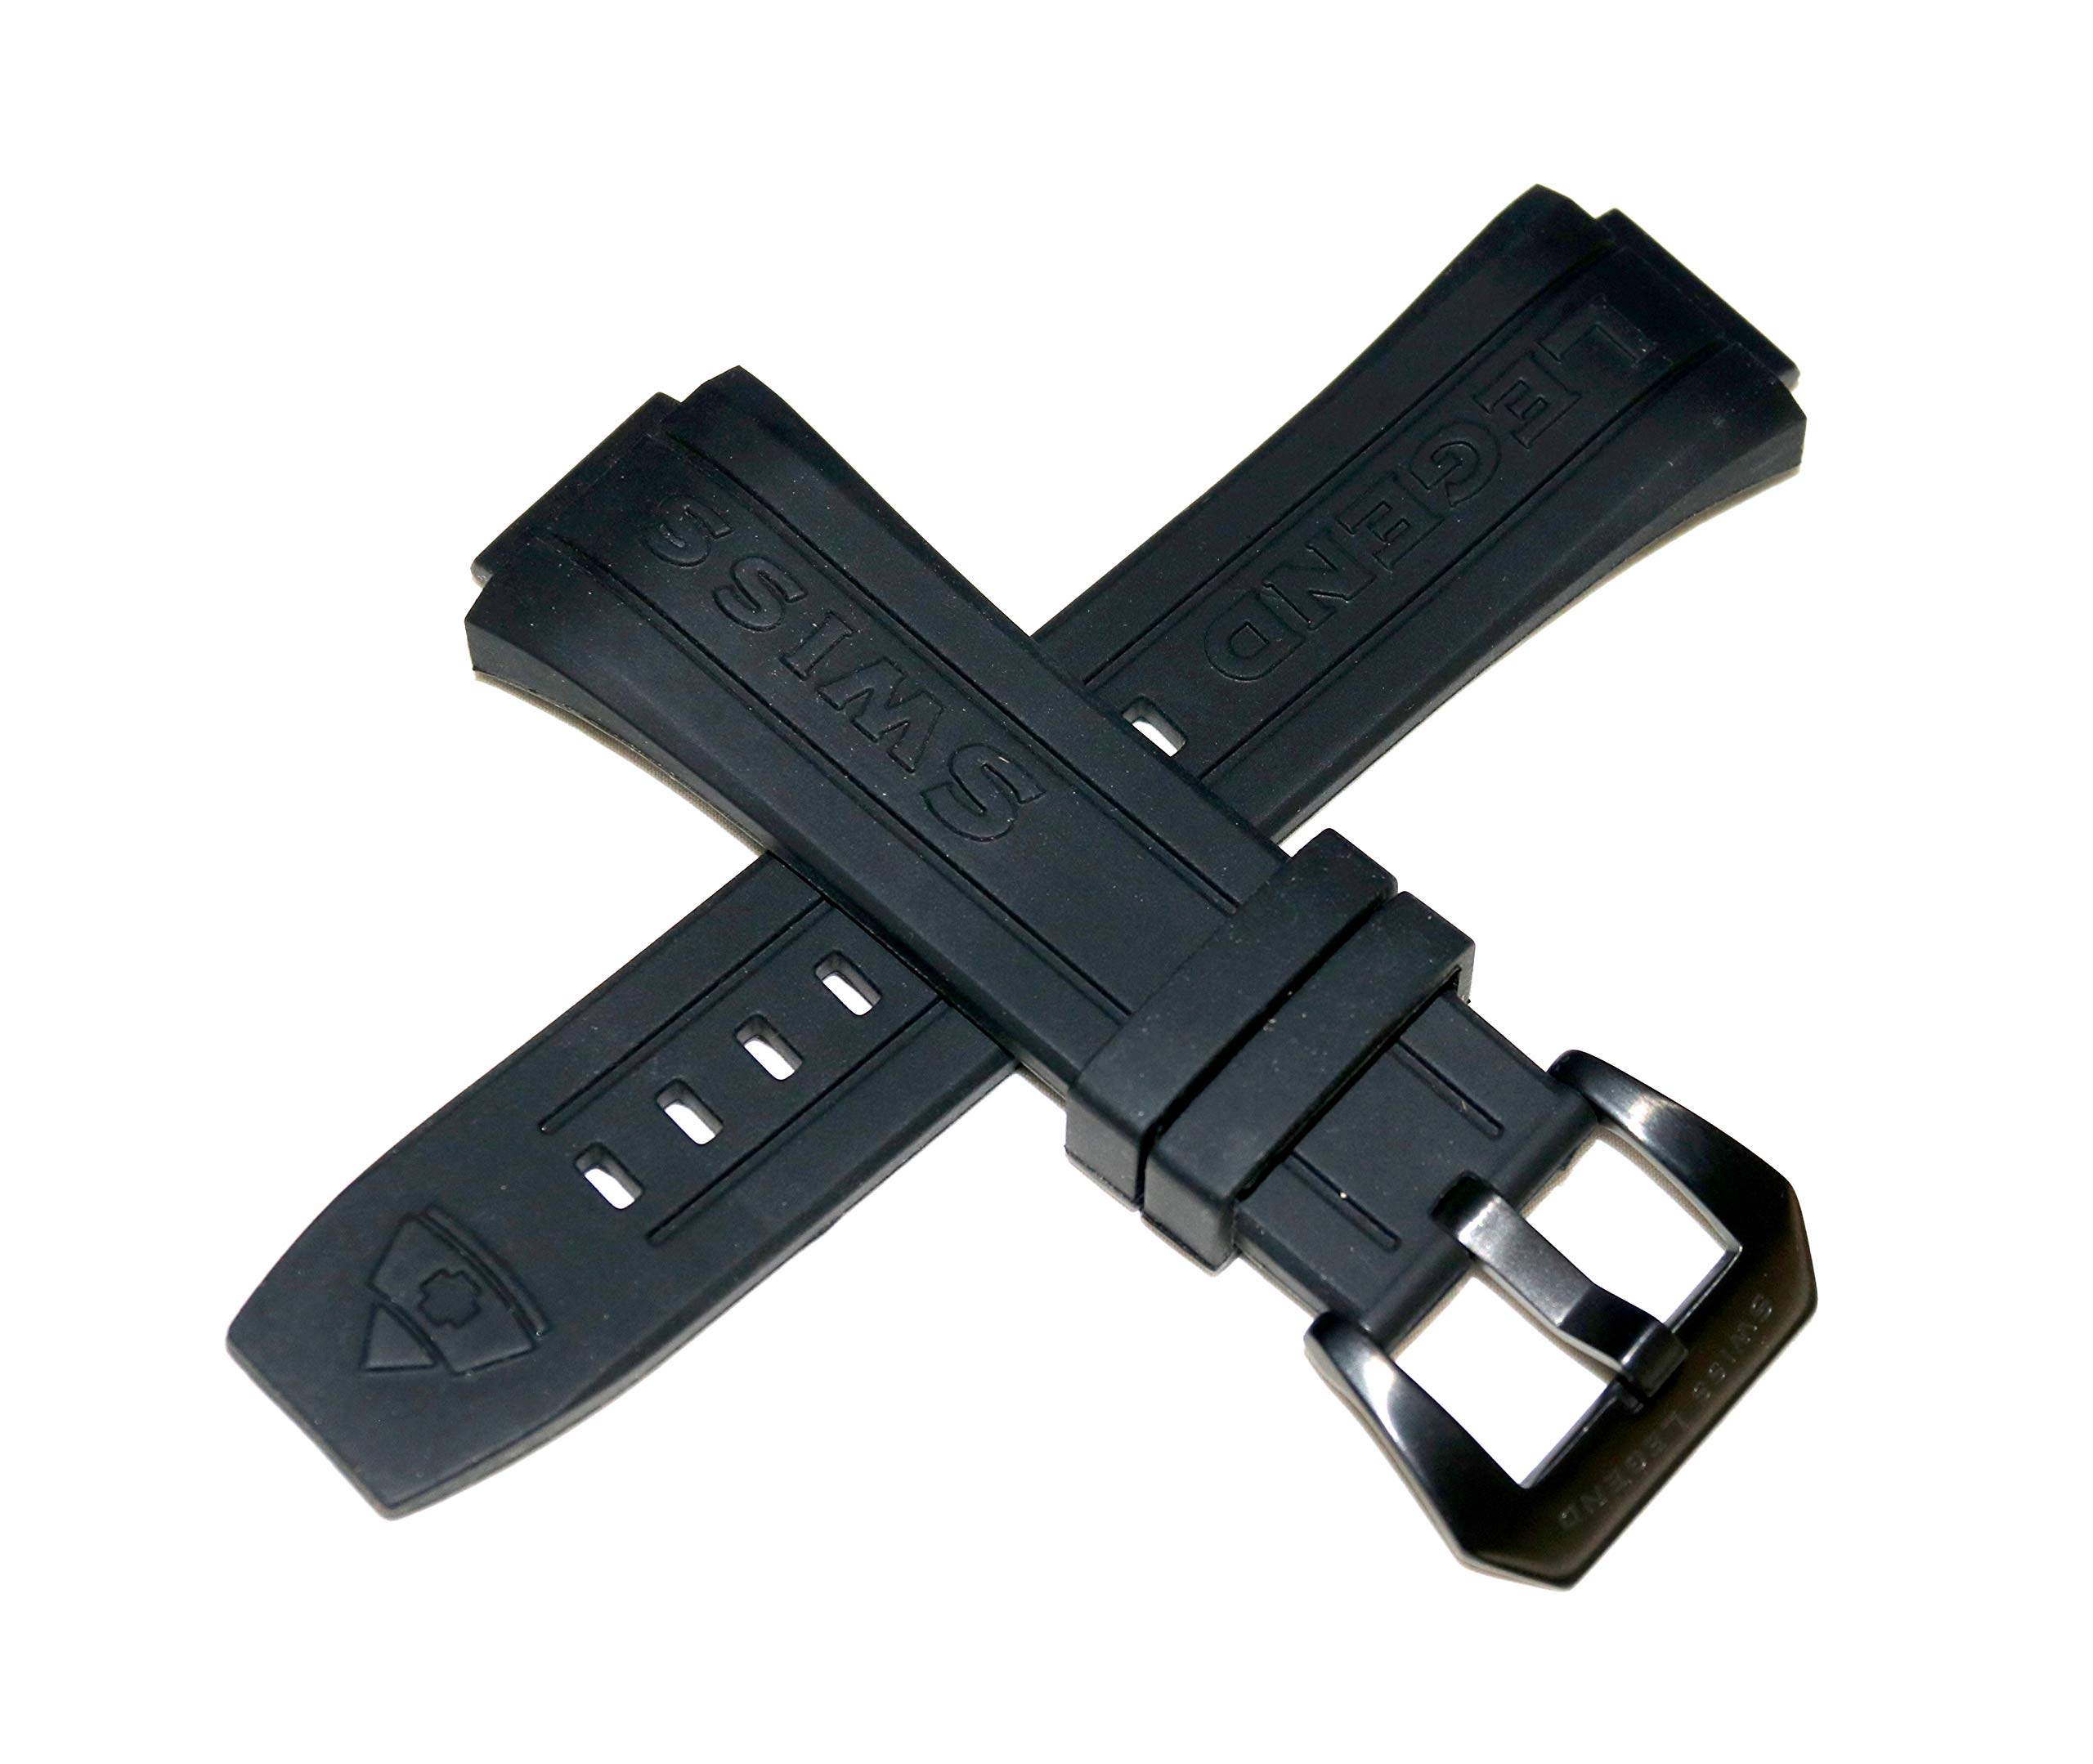 Swiss Legend 28MM Black Silicone Watch Strap Black Stainless Buckle fits 44mm Trimix Diver Watch by SWISS LEGEND (Image #1)